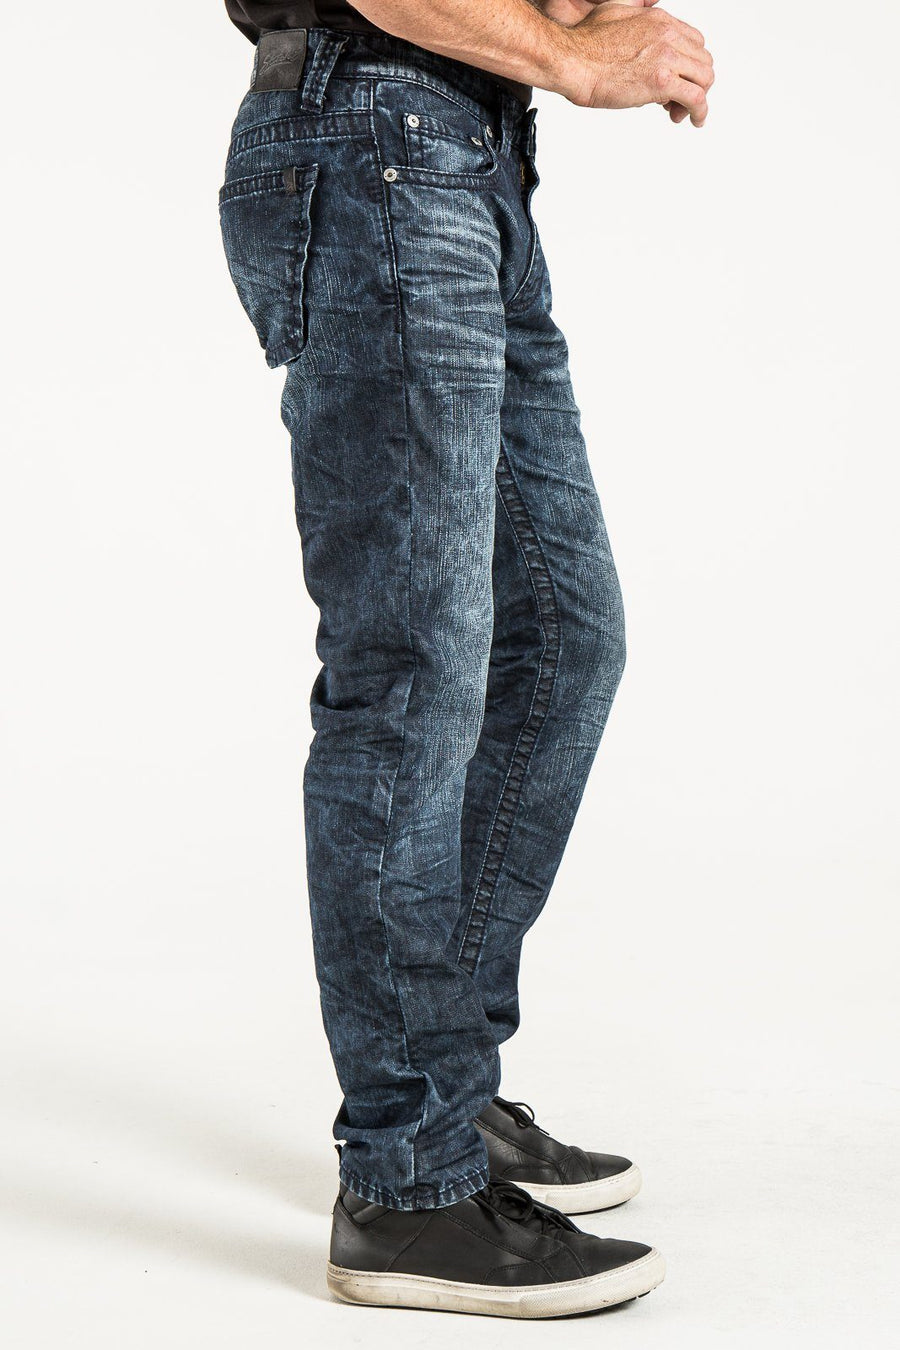 BARFLY SLIM IN REVOLUTION DENIM